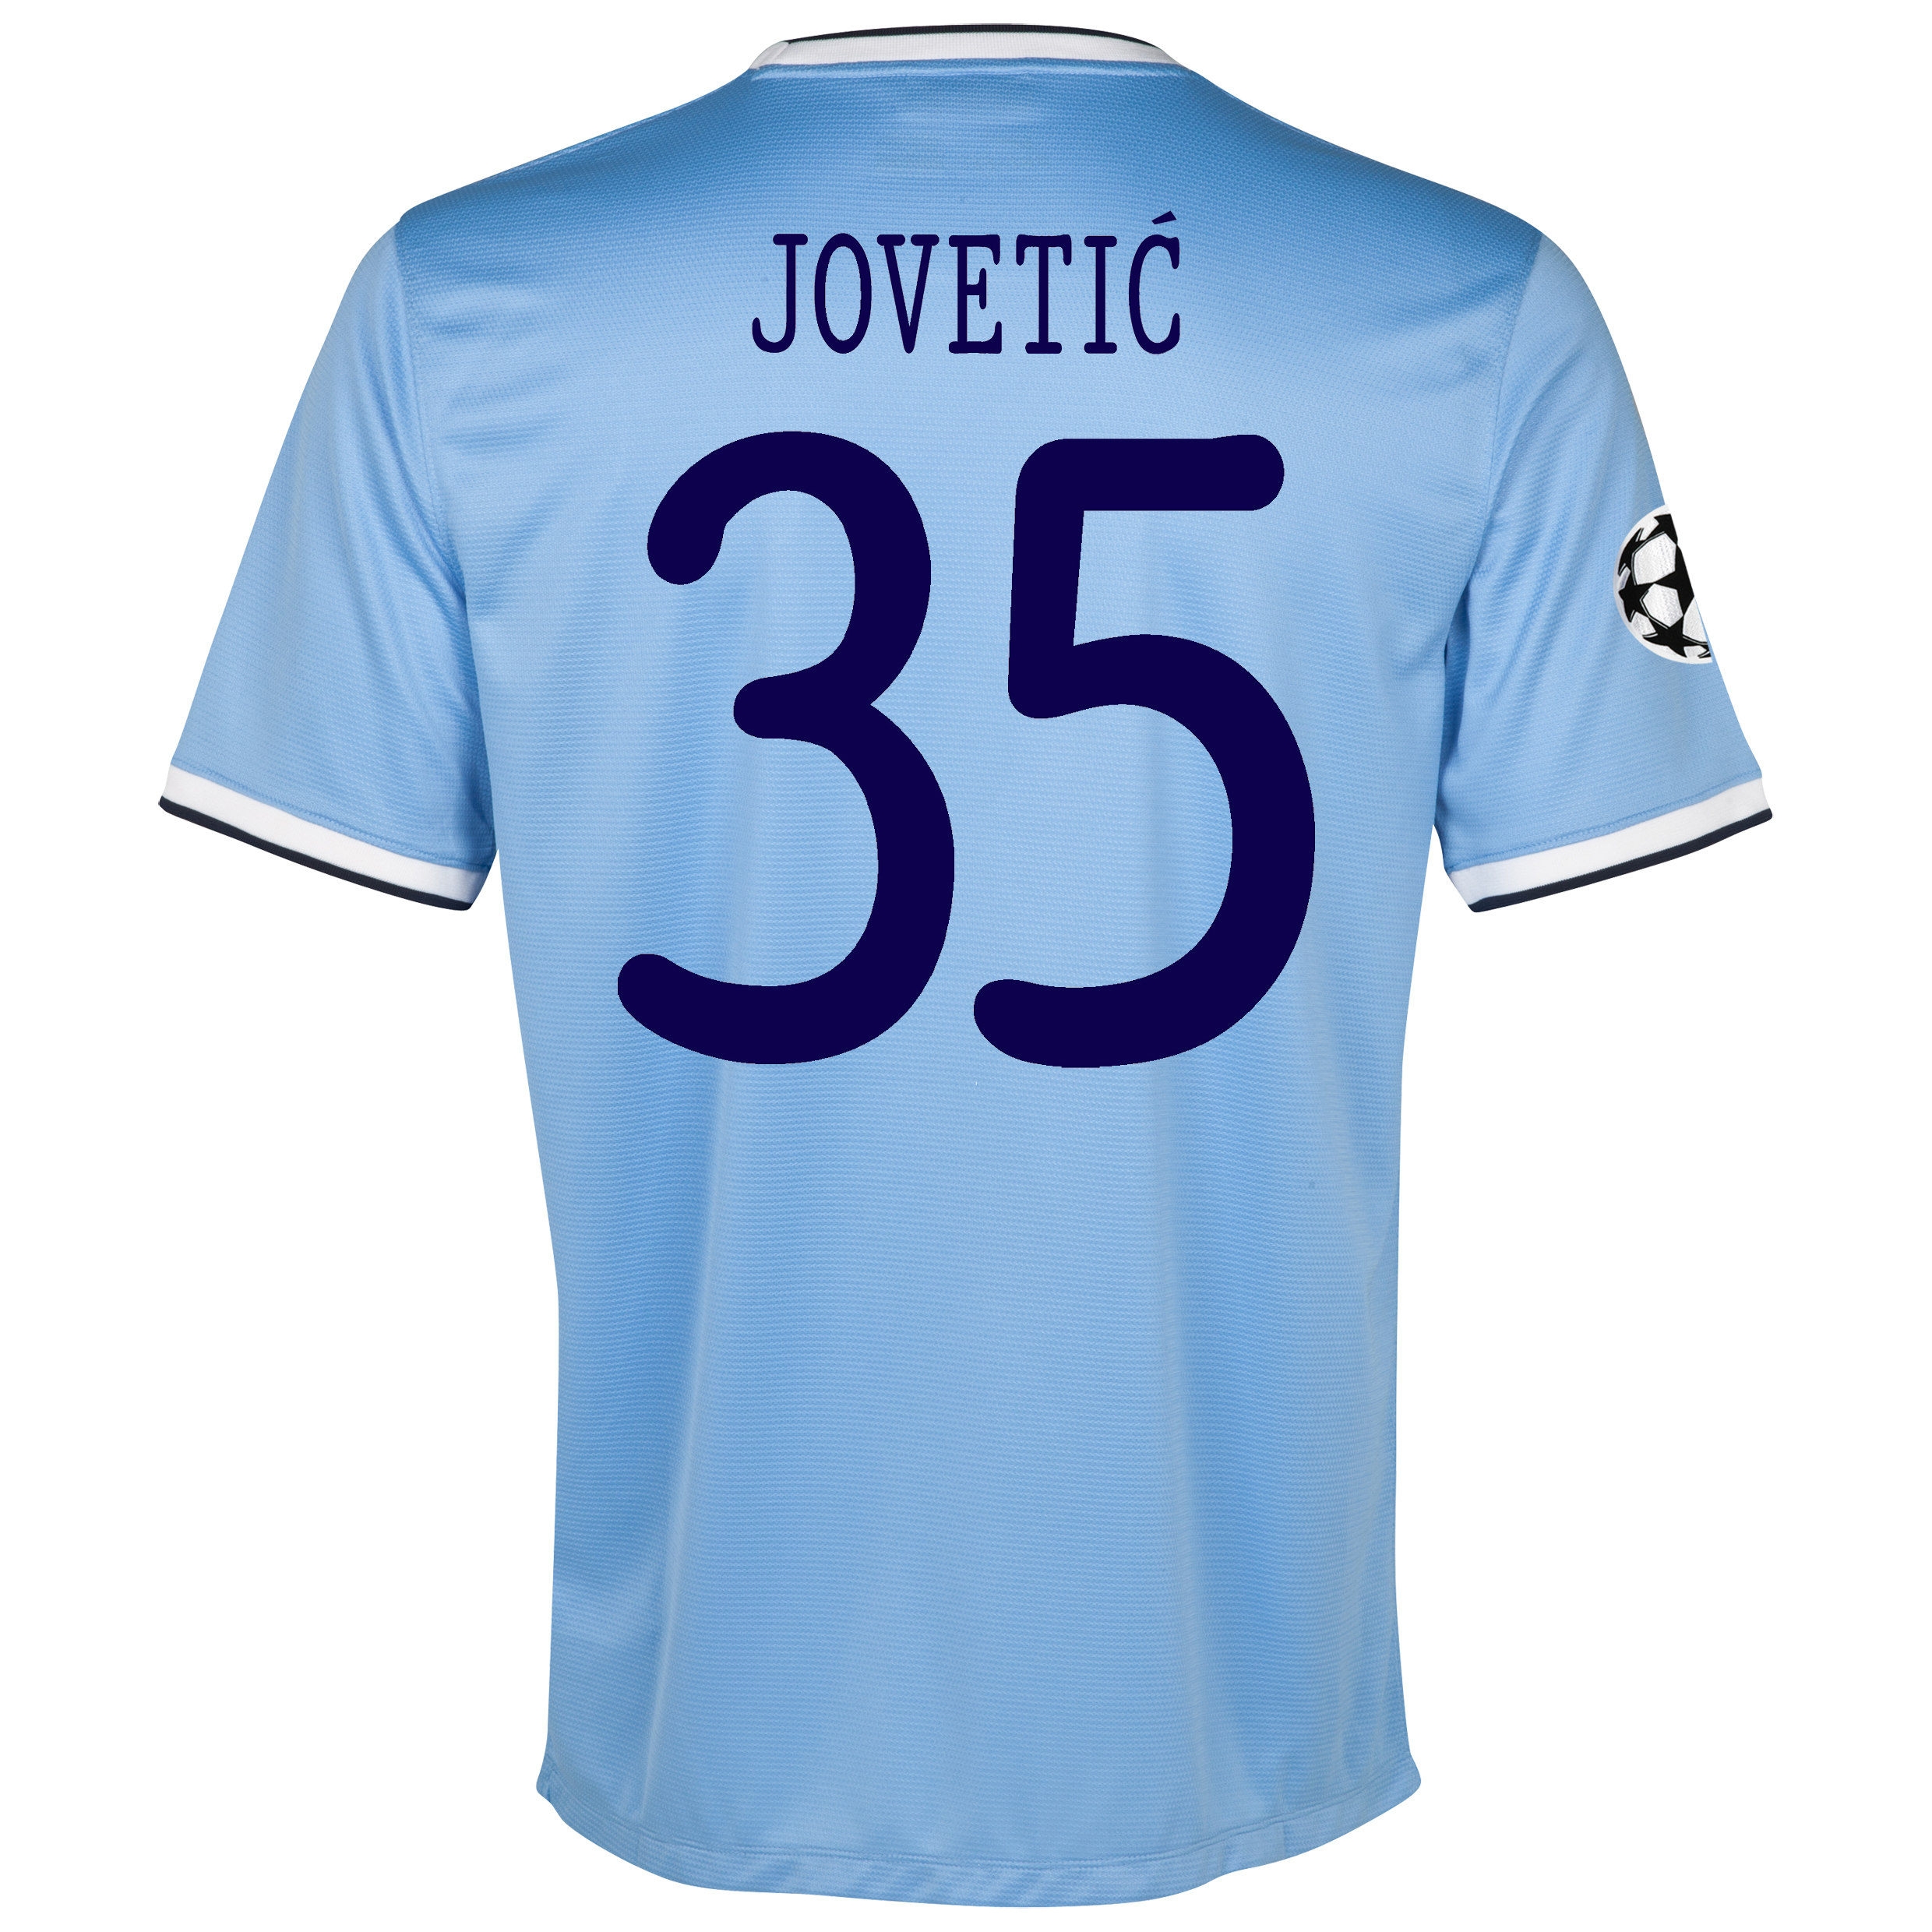 Manchester City UEFA Champions League Home Shirt 2013/14 - Junior with Jovetic 35 printing